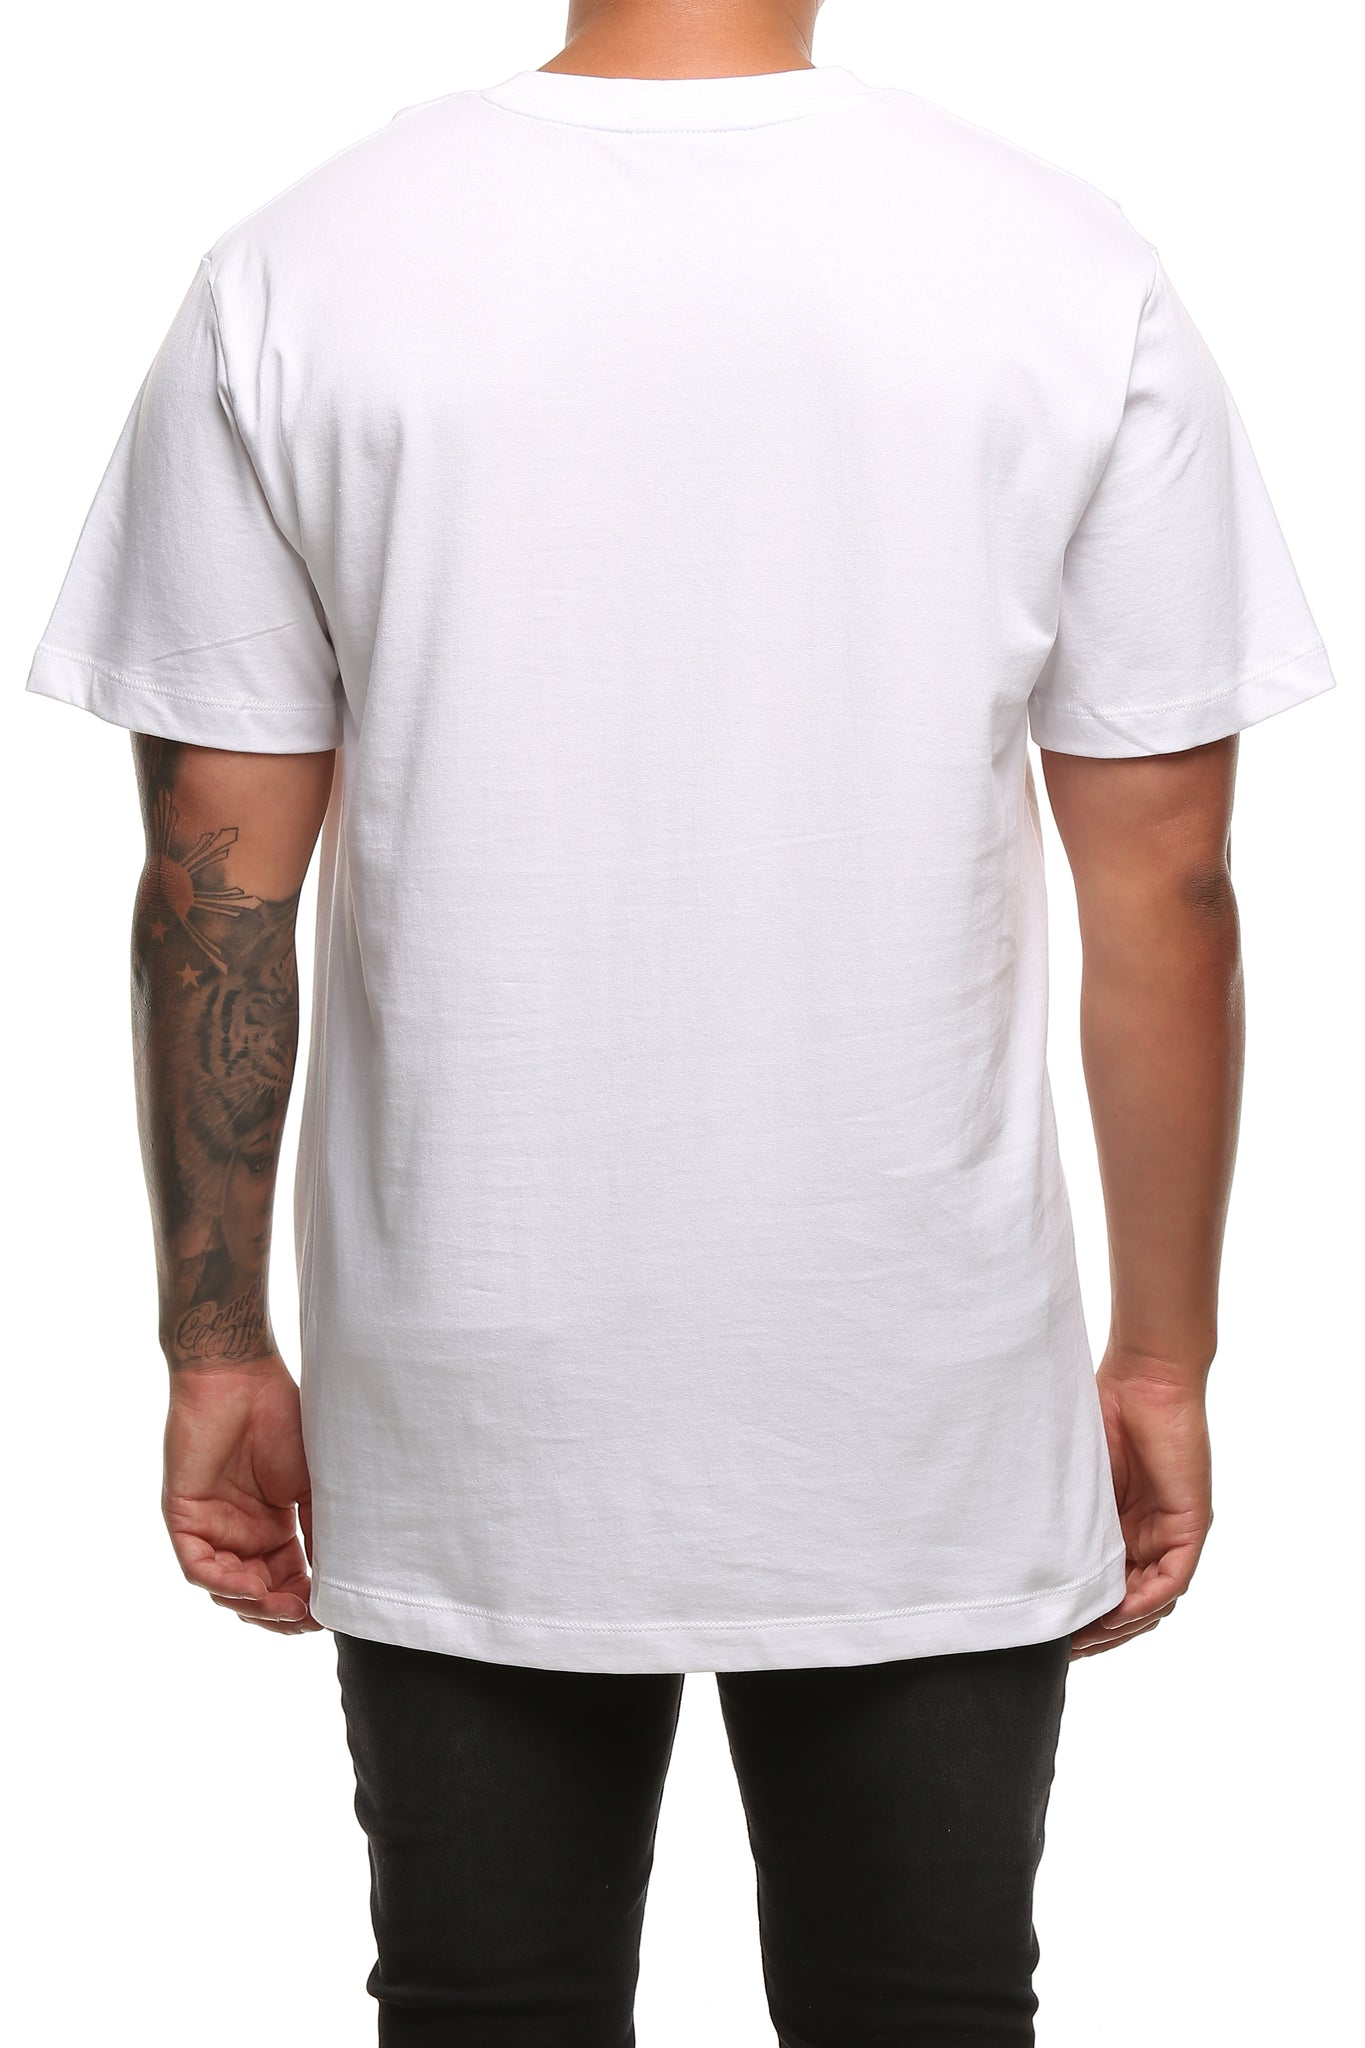 RGF X LY TIGER SS TEE - White